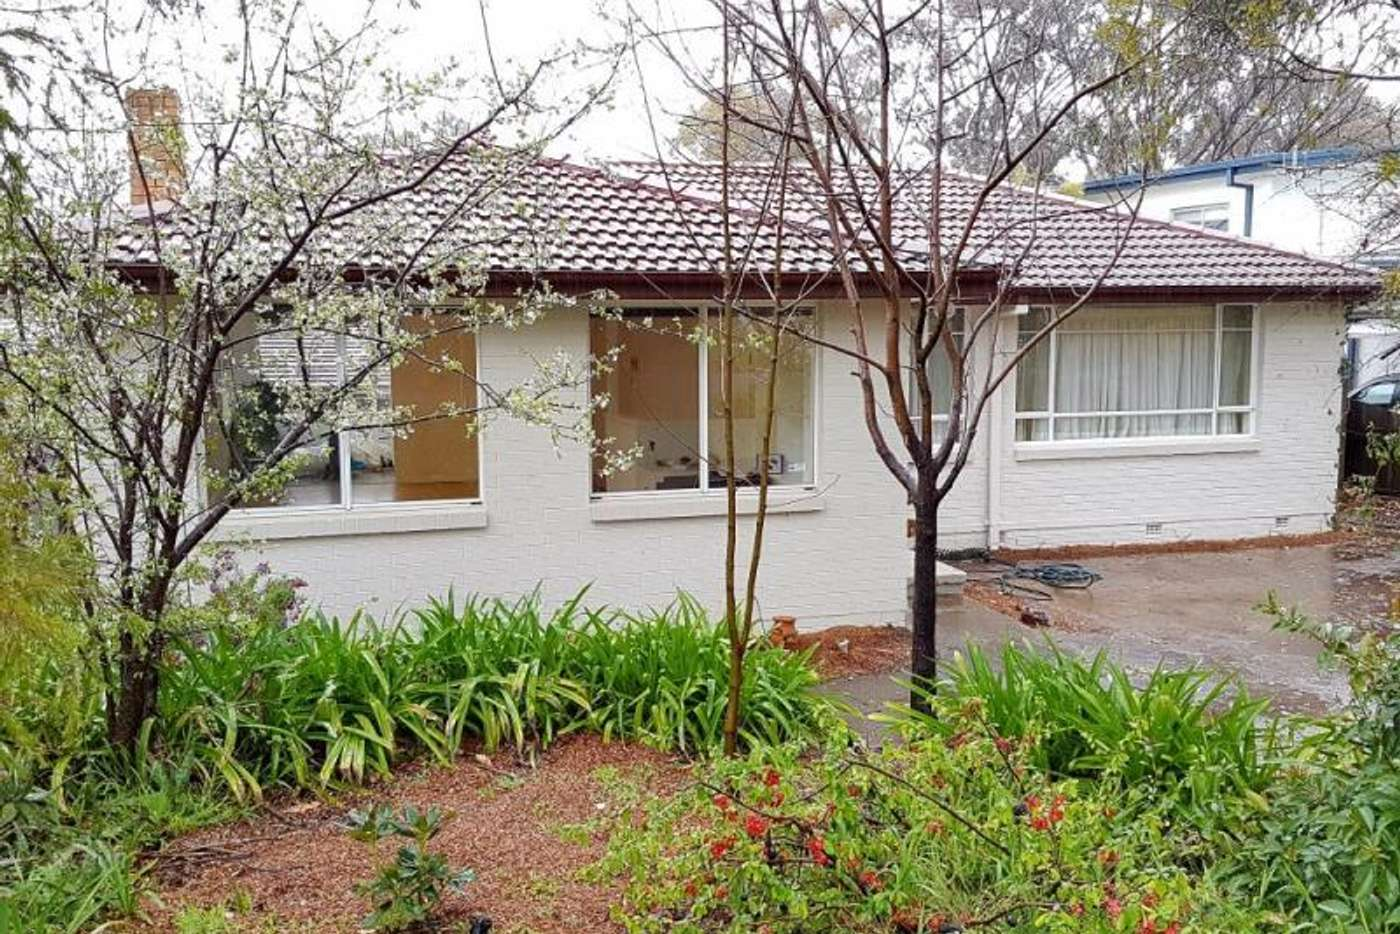 Main view of Homely house listing, 31 Port Arthur Street, Lyons ACT 2606